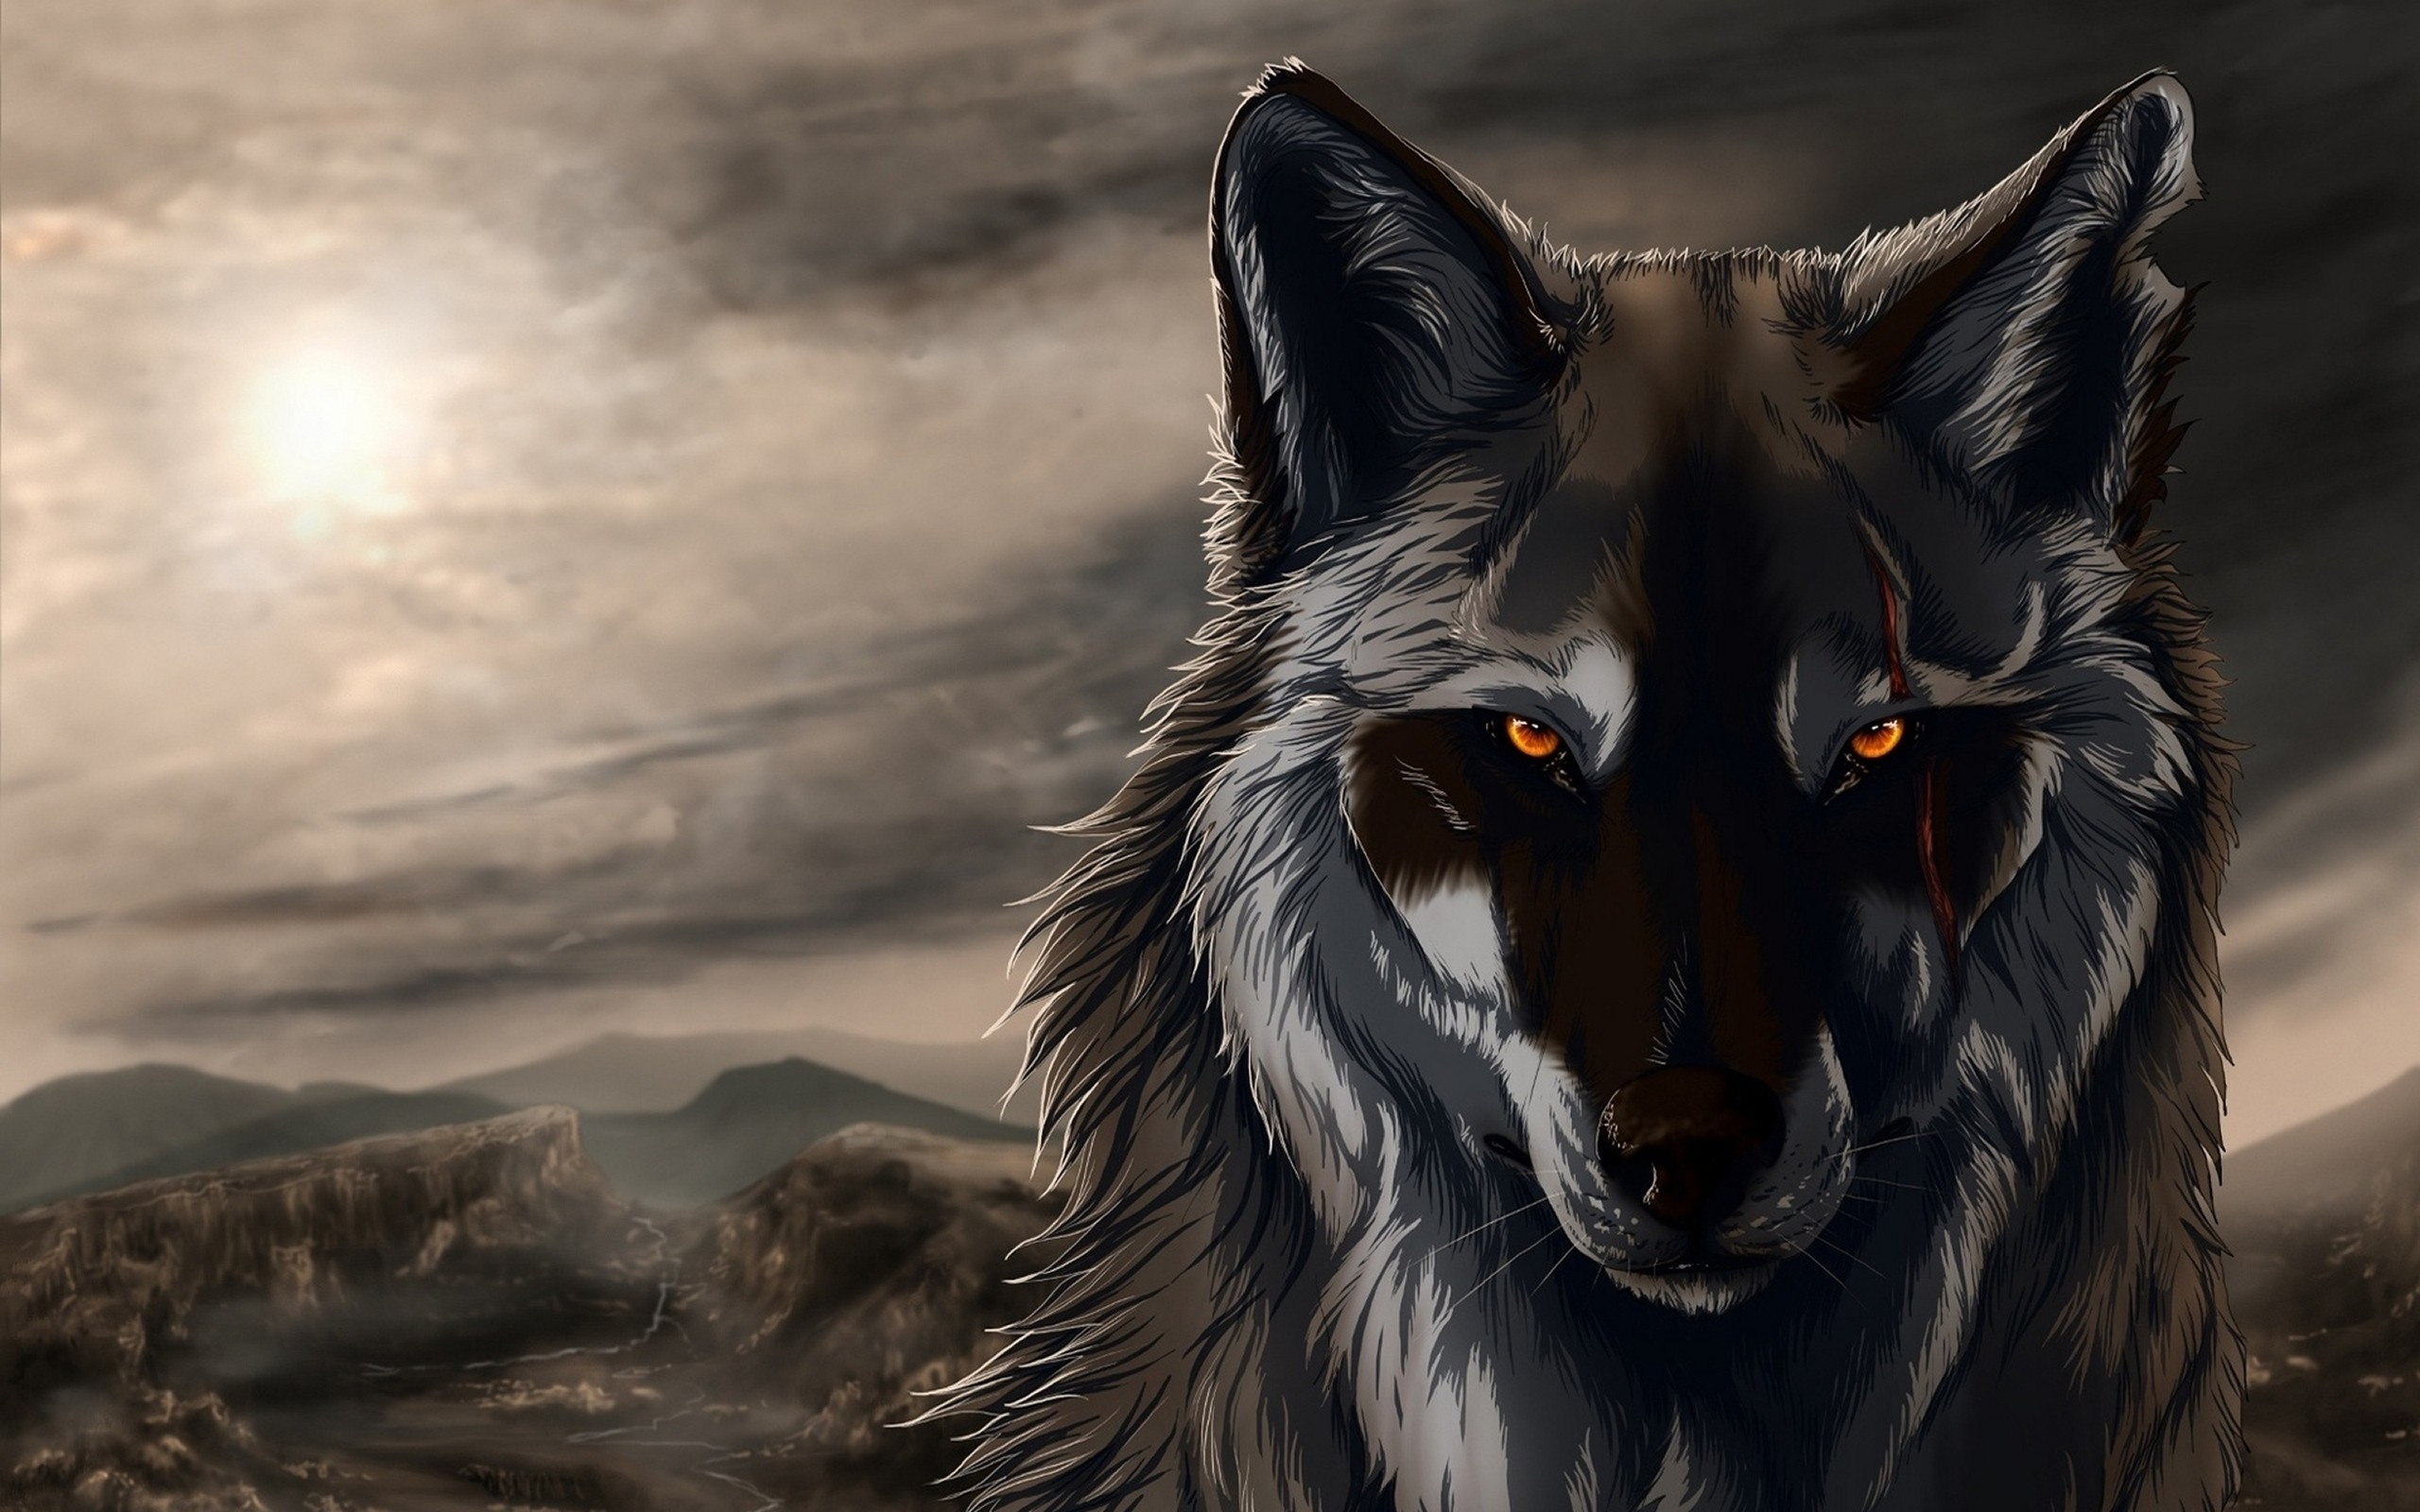 Res: 2560x1600, HD Wallpaper | Background Image ID:318728.  Animal Wolf